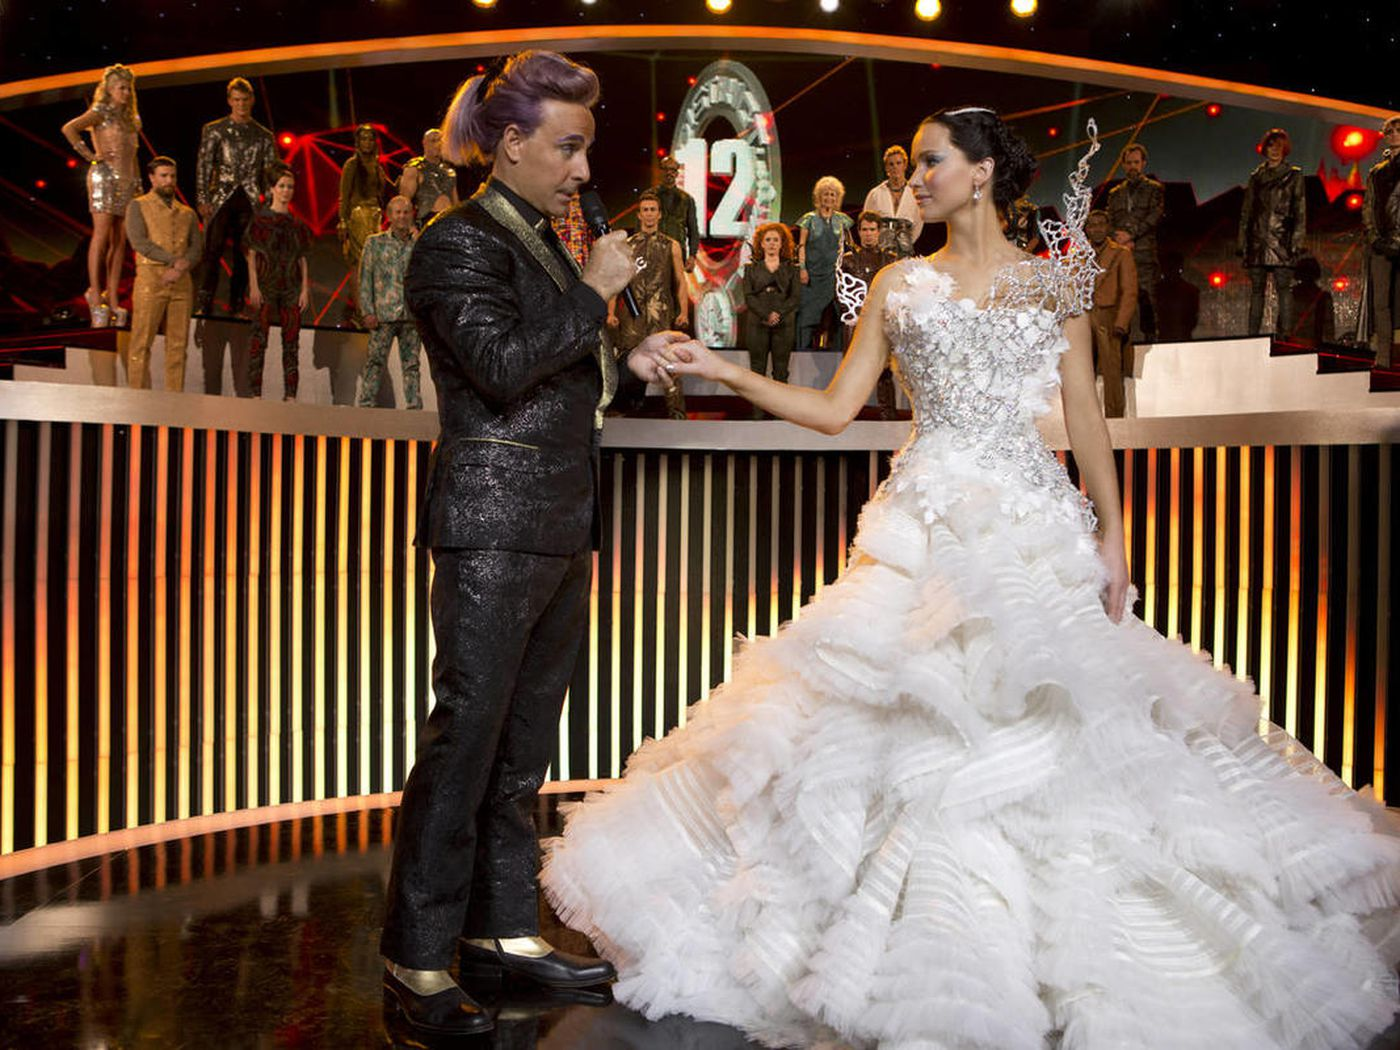 Catching Fire' raises the stakes in 'Hunger Games' sequel